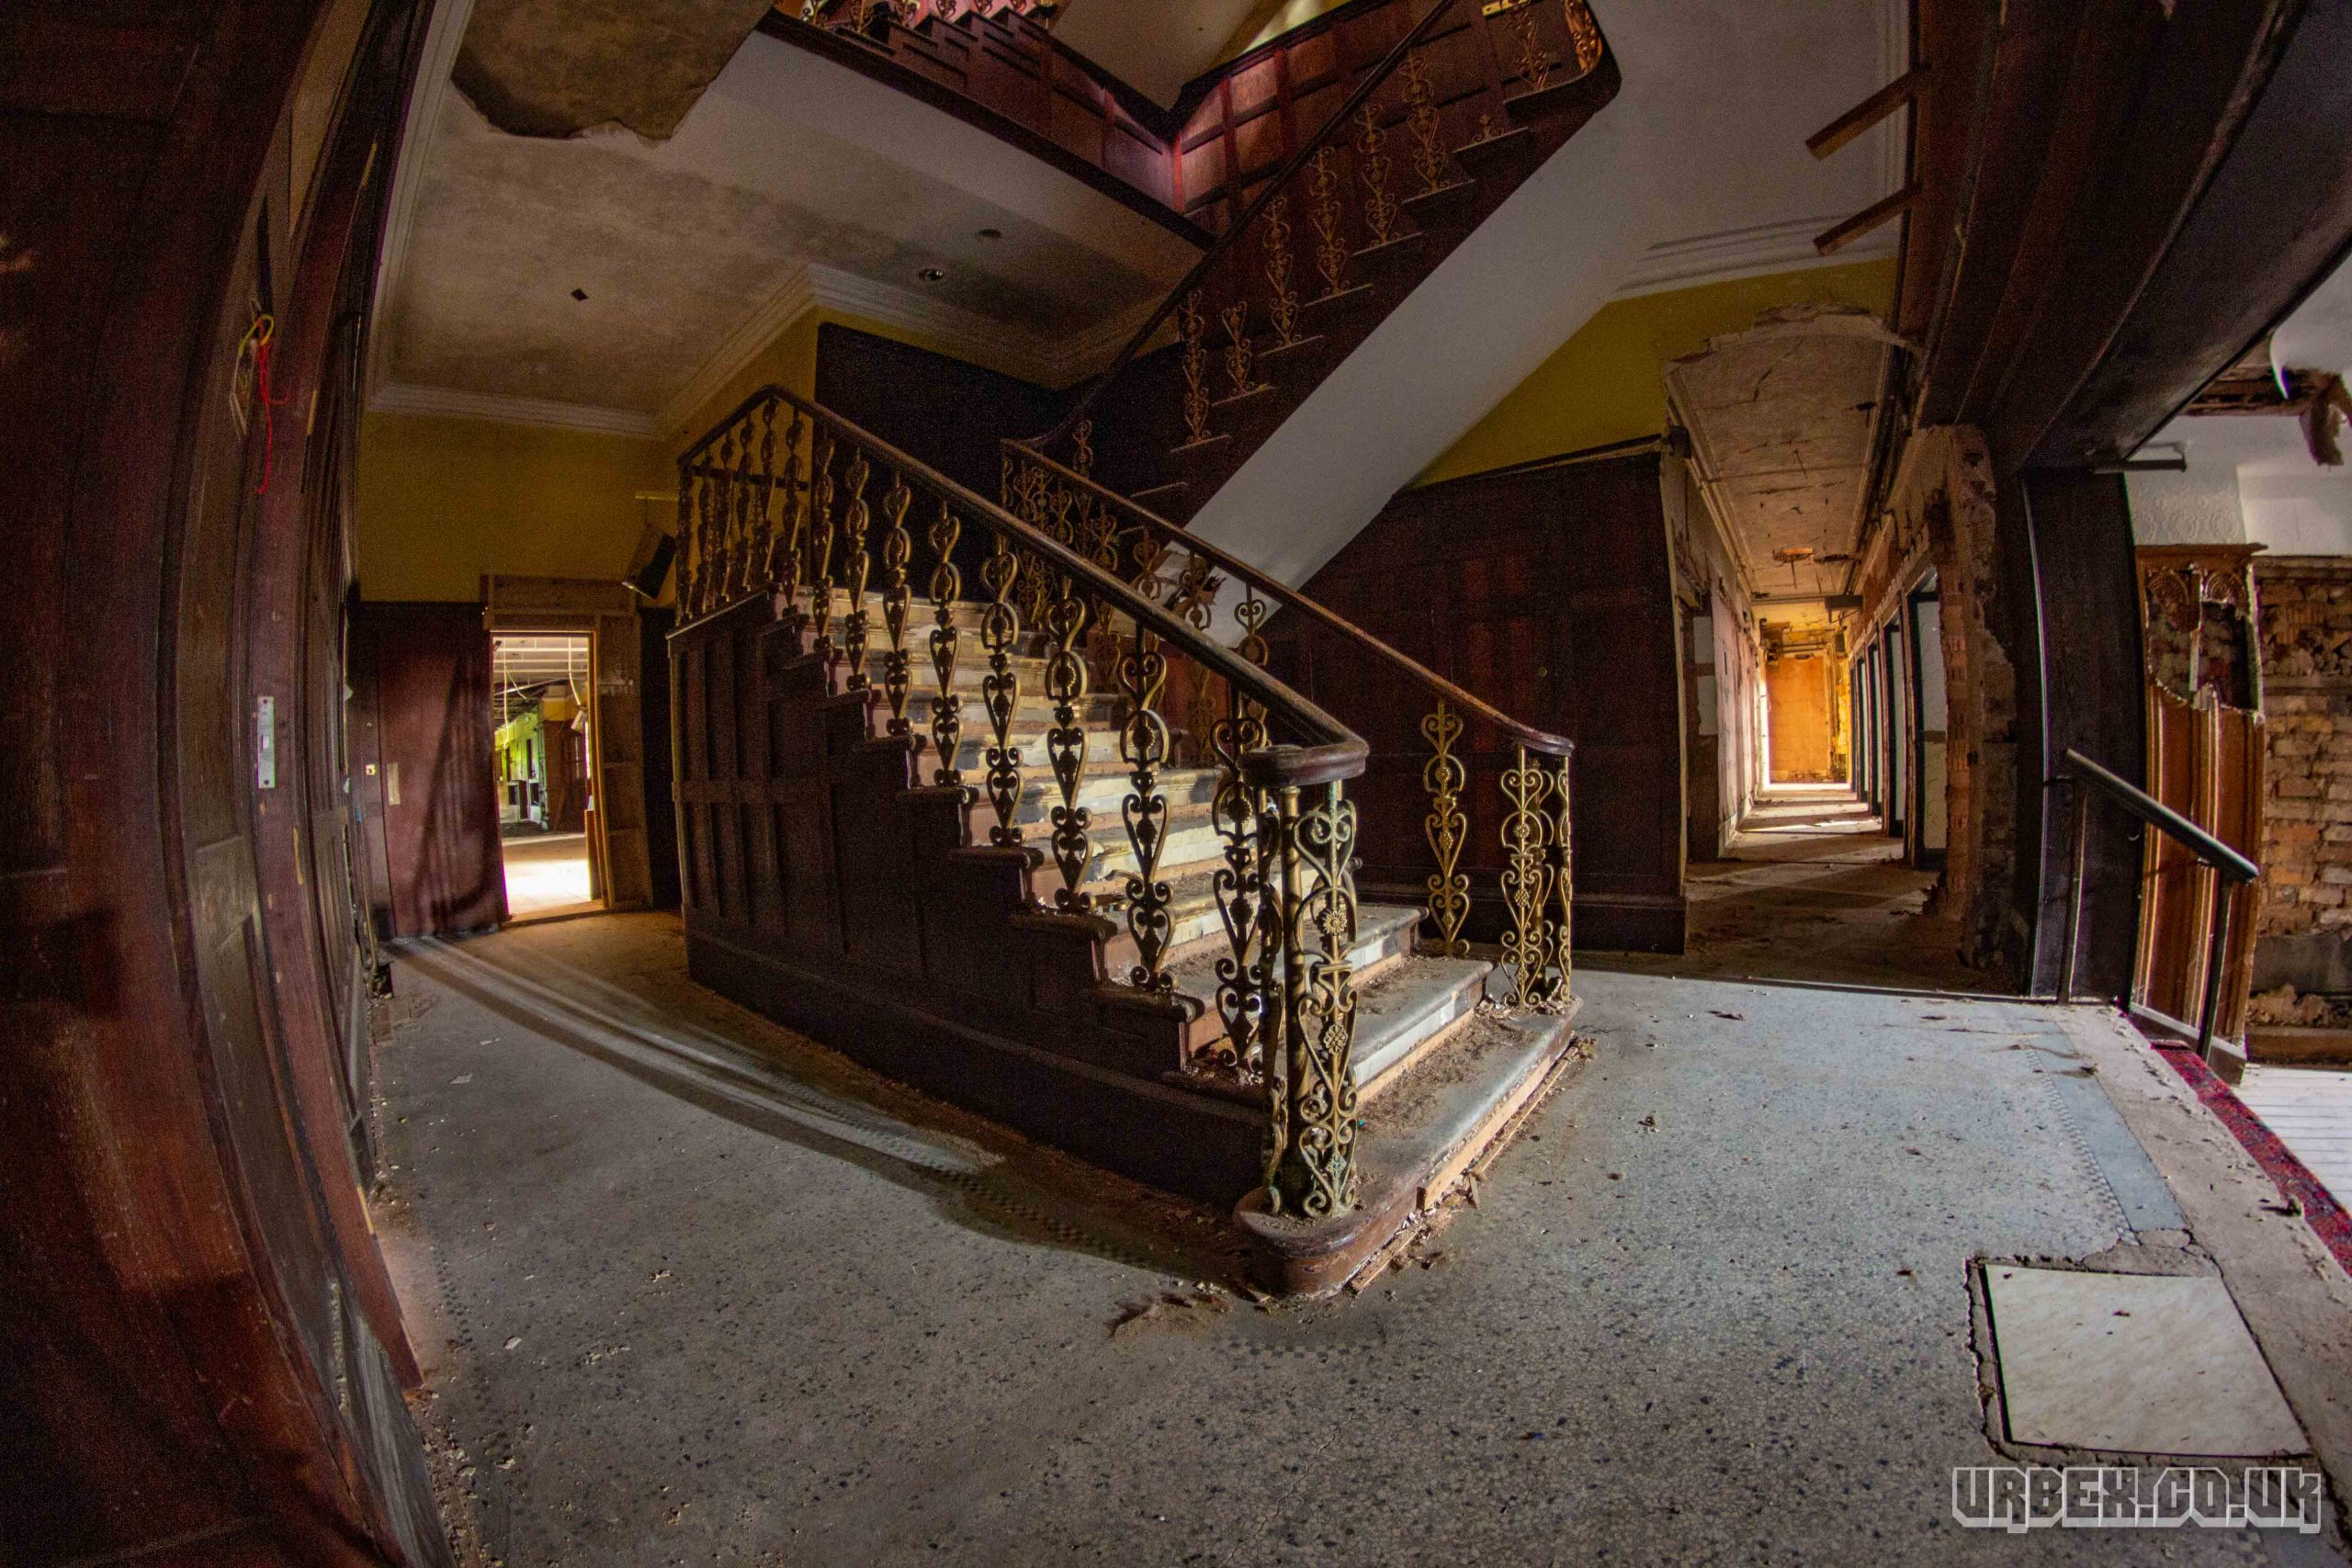 Grand stair case in the reception of an abandoned hotel